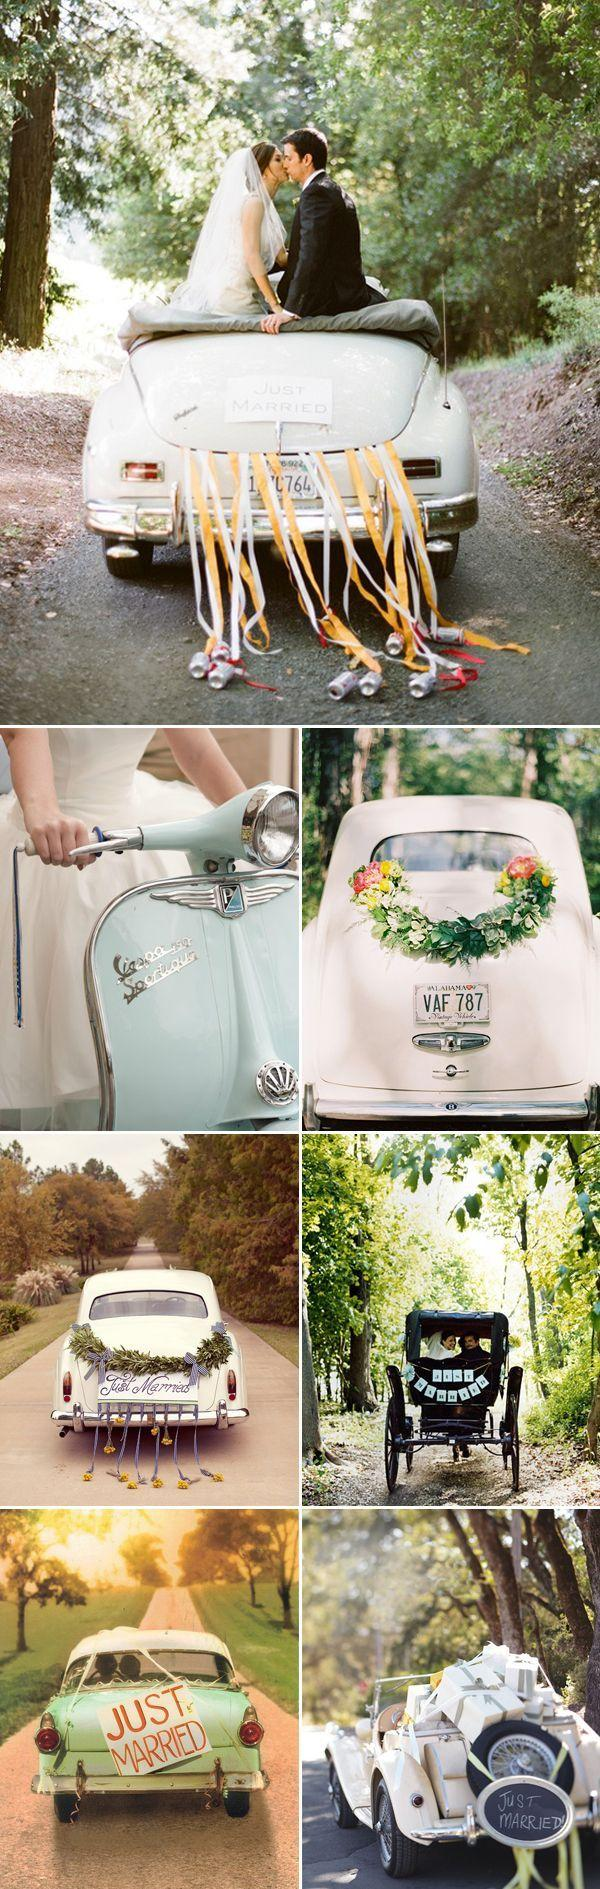 Wedding - 10 Steps To A Vintage Wedding